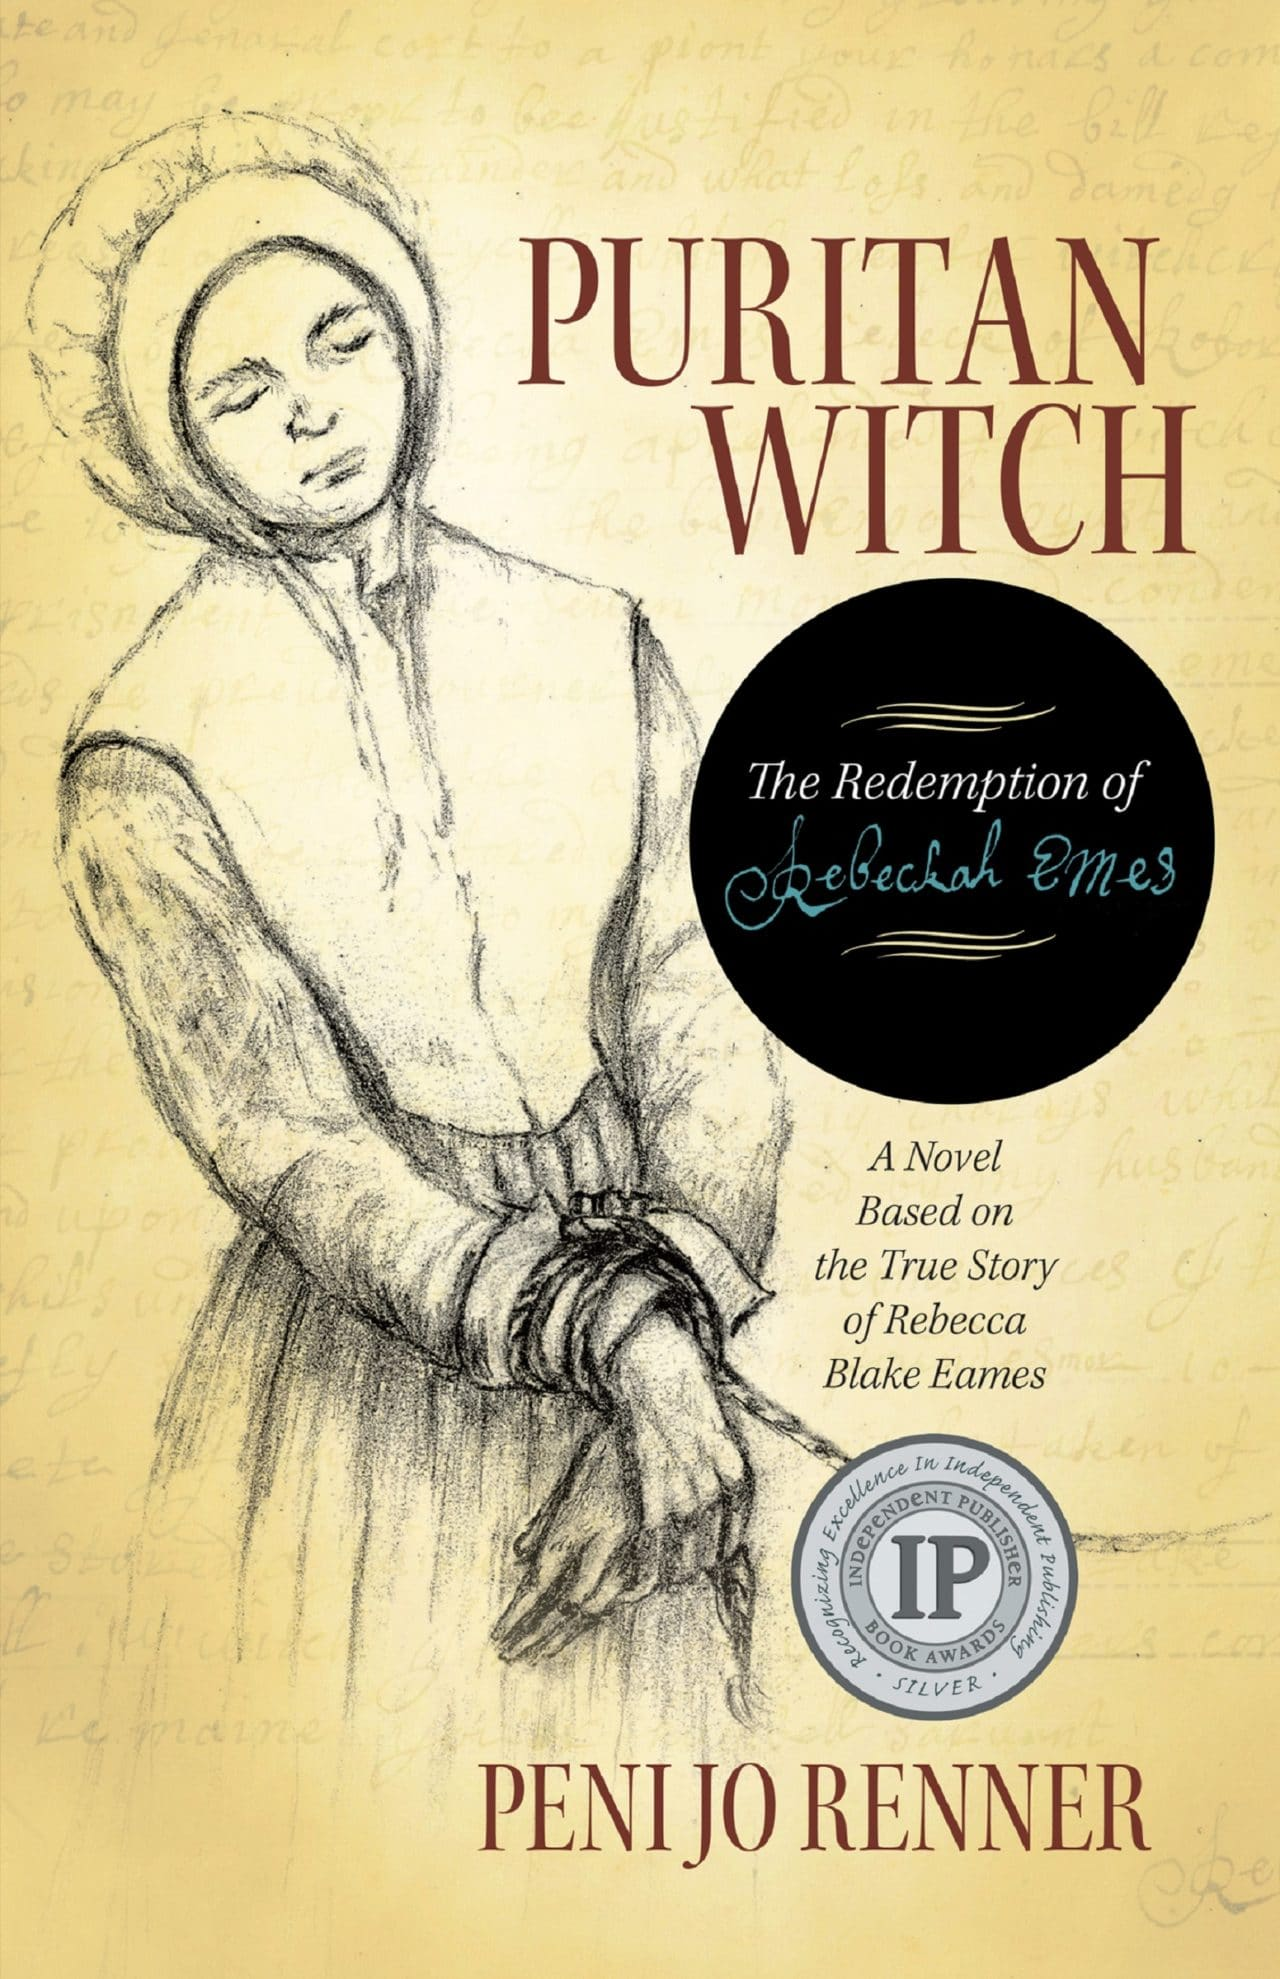 an essay on the truth test during the witchcraft hysteria in salem The crucible: characters essay the crucible: characters chetan patel the crucible, a play by arthur miller that was first produced in 1953, is based on the true story of the salem witch trials of 1692.